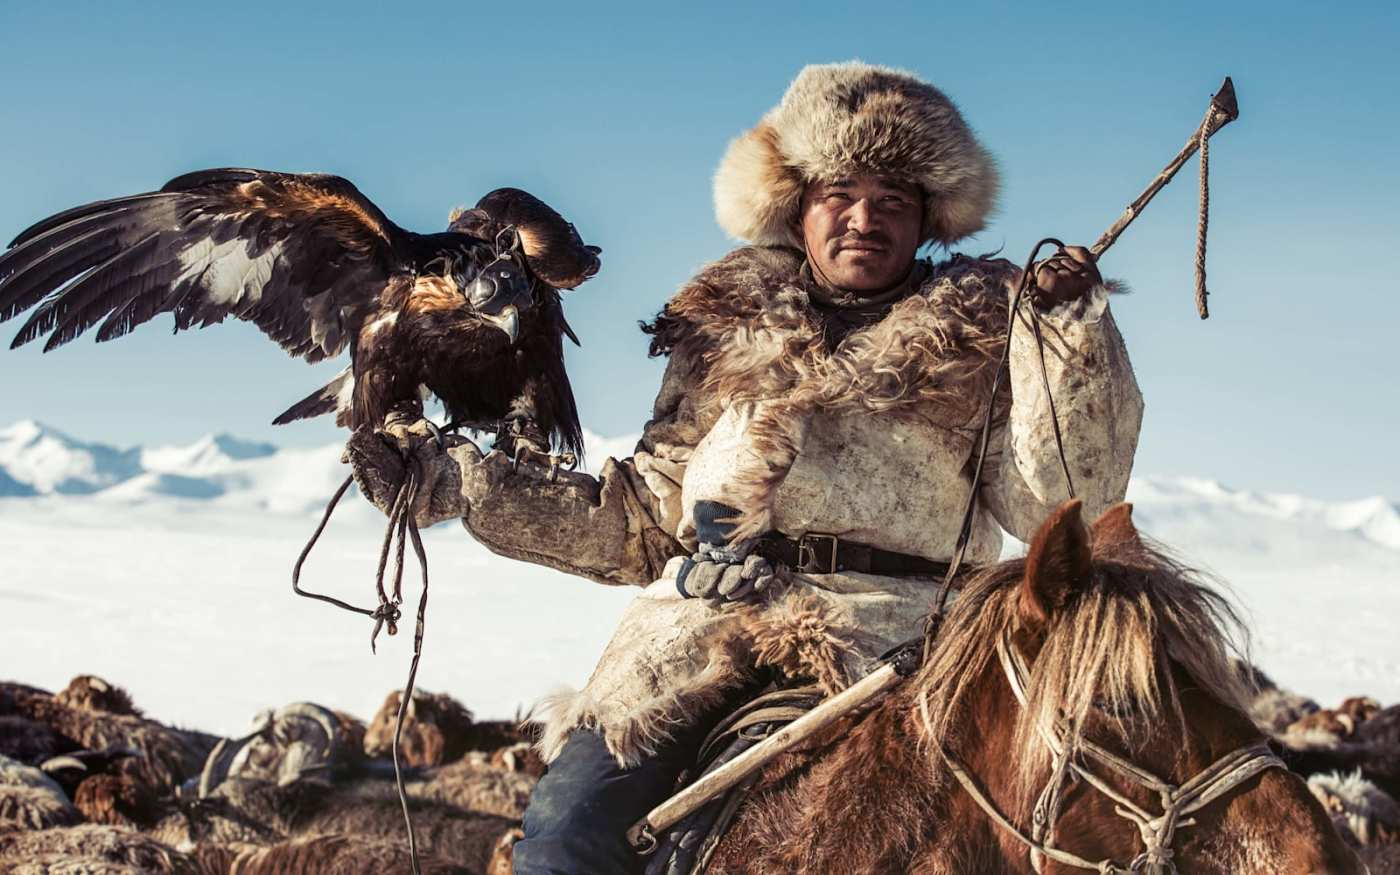 Image of a man in Mongolia, on a horse, with a bird of prey on his arm